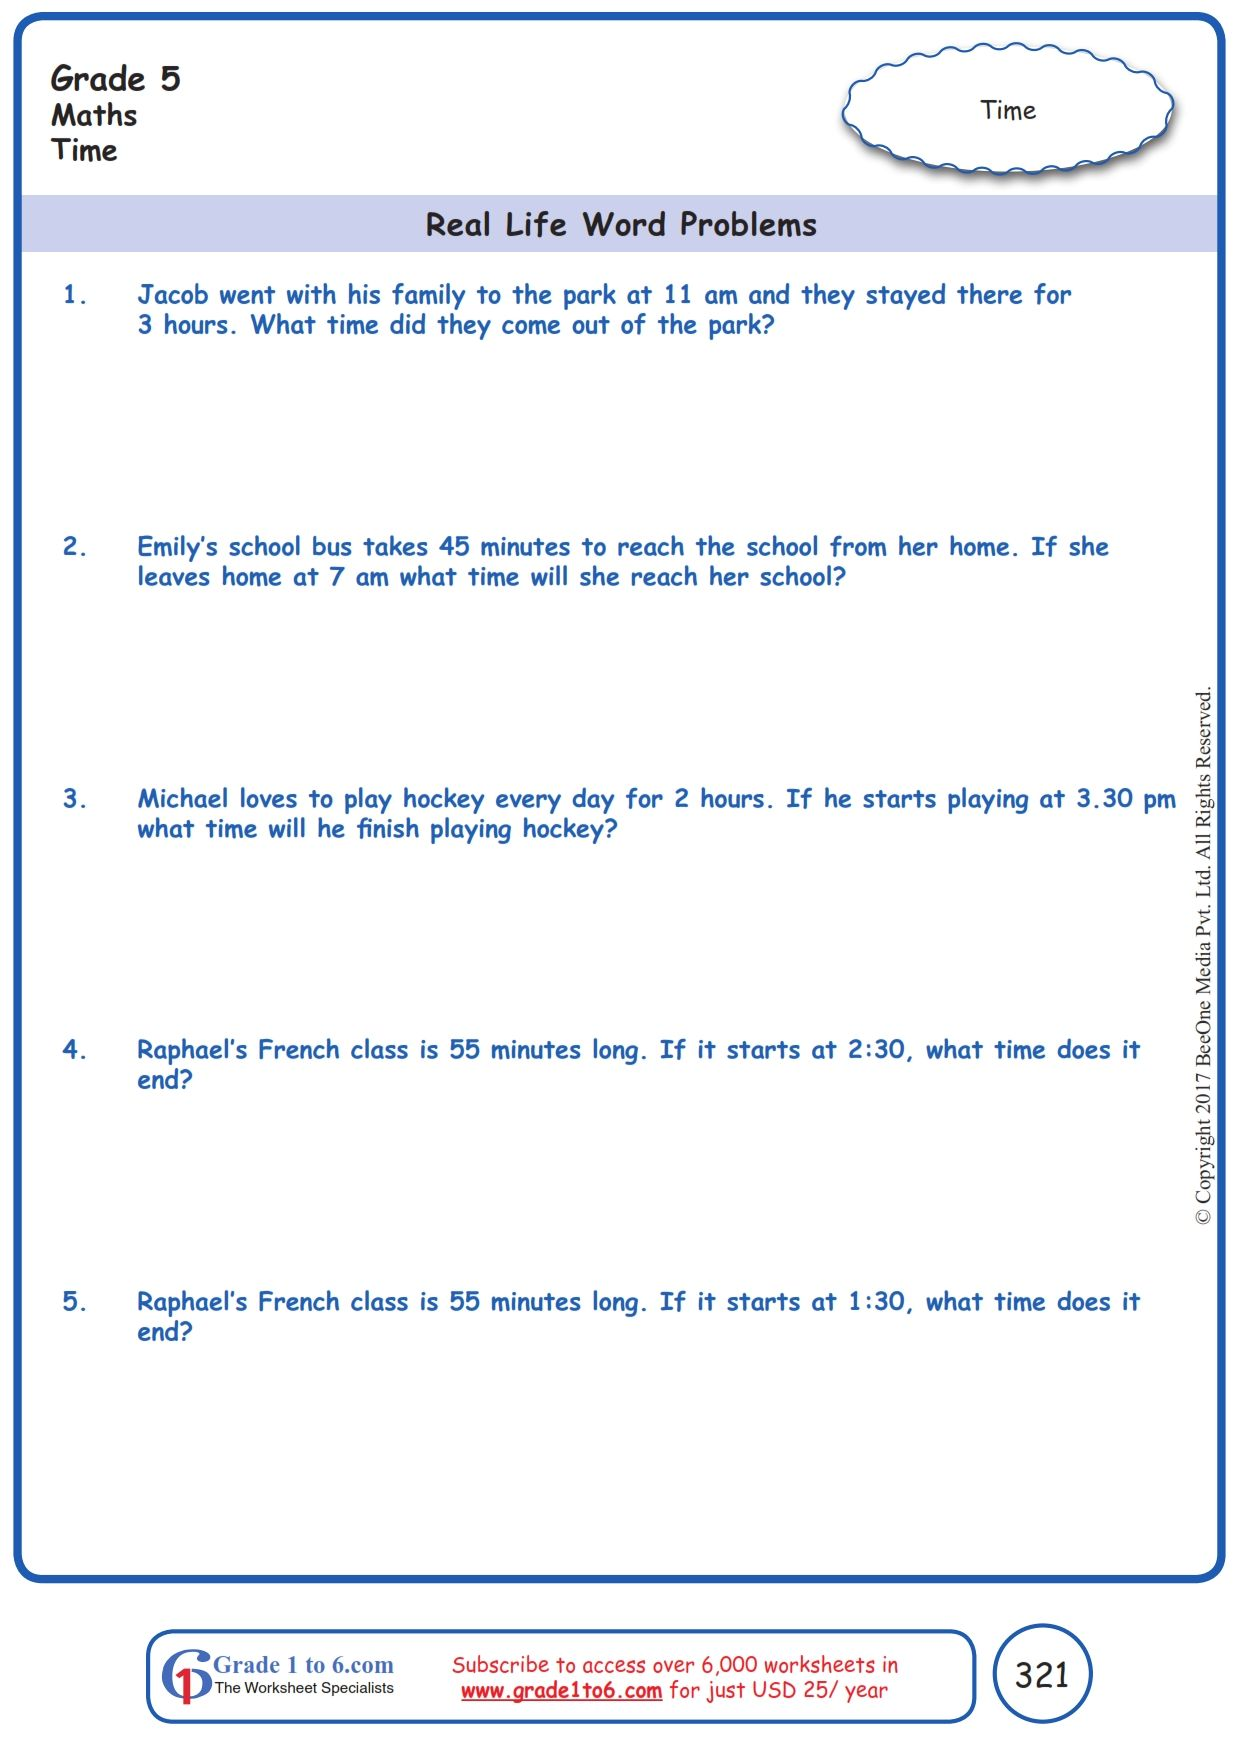 Worksheet Grade 5 Math Real Life Word Problems In 2021 Word Problem Worksheets Word Problems Math Fact Worksheets